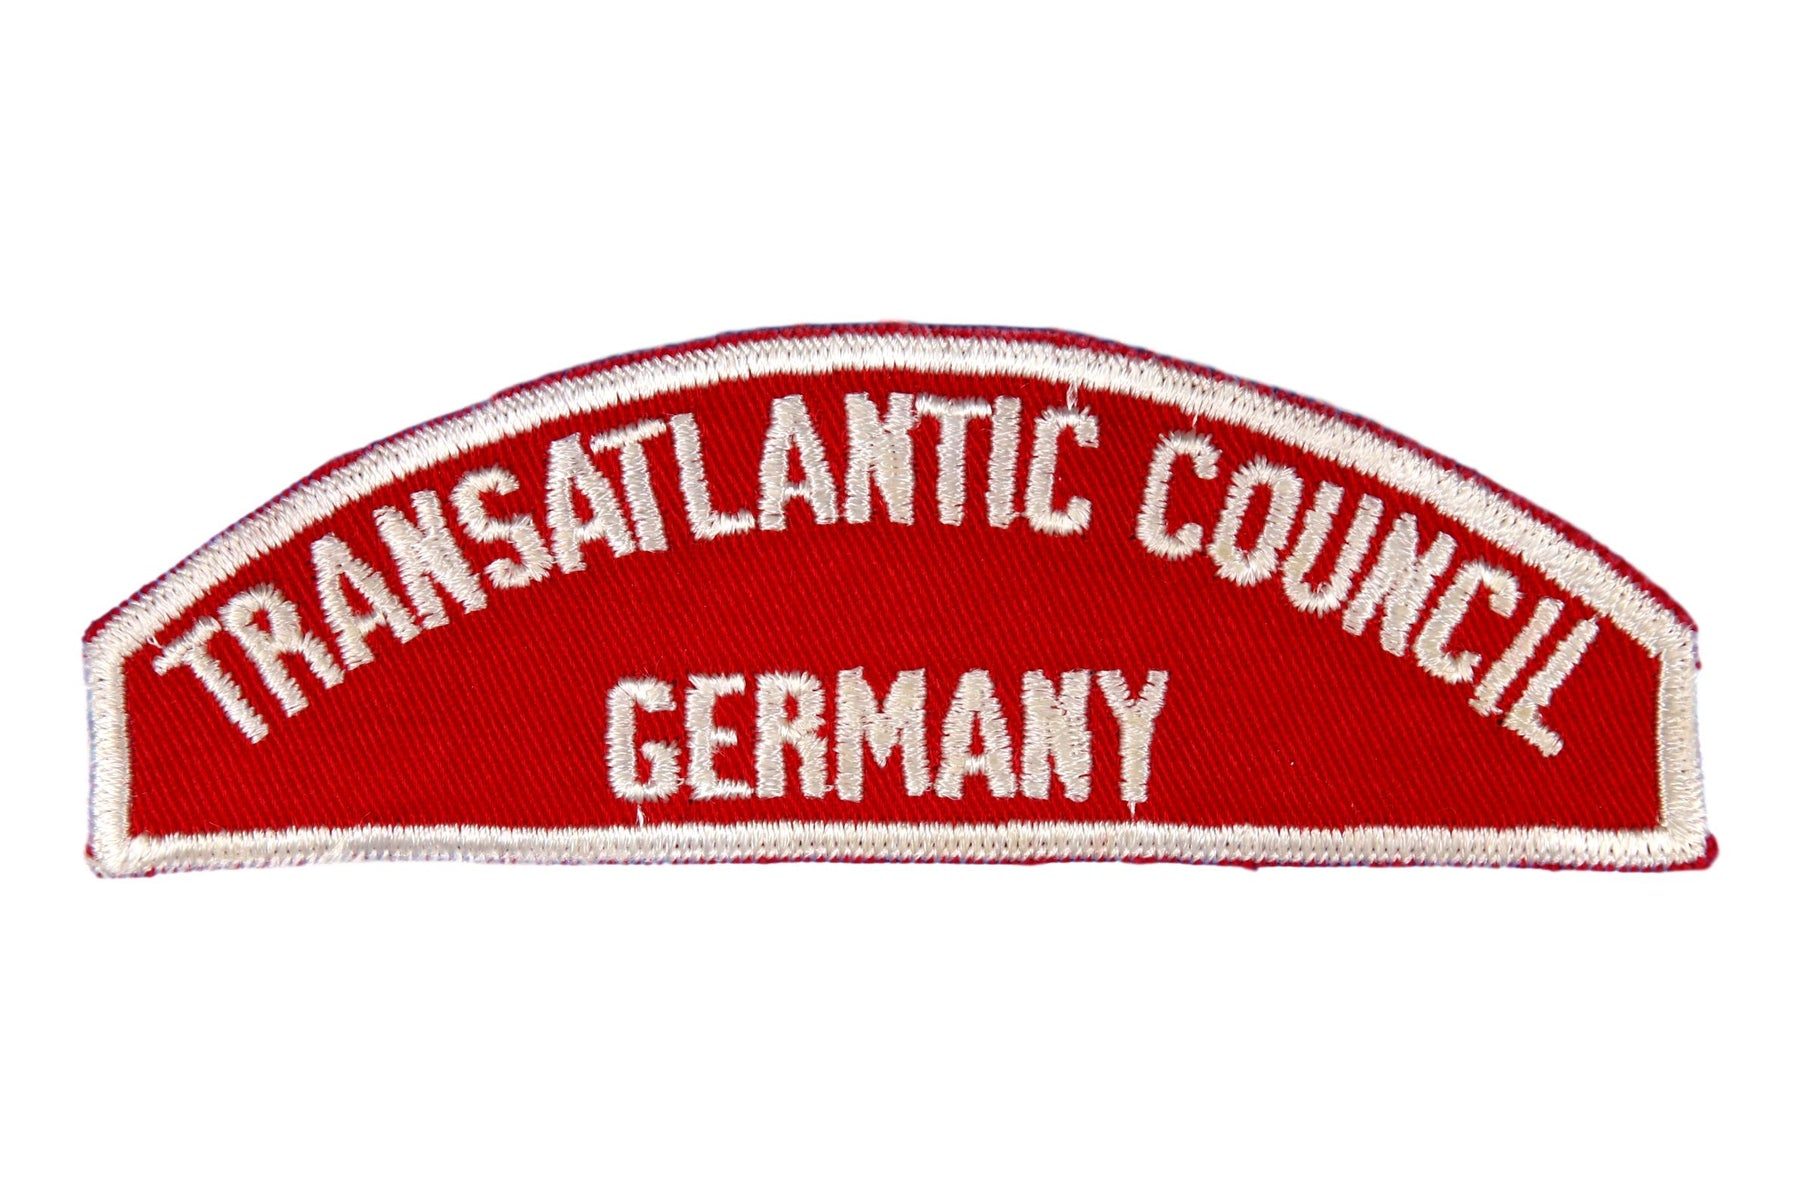 Transatlantic Council/Germany Red and White Council Strip